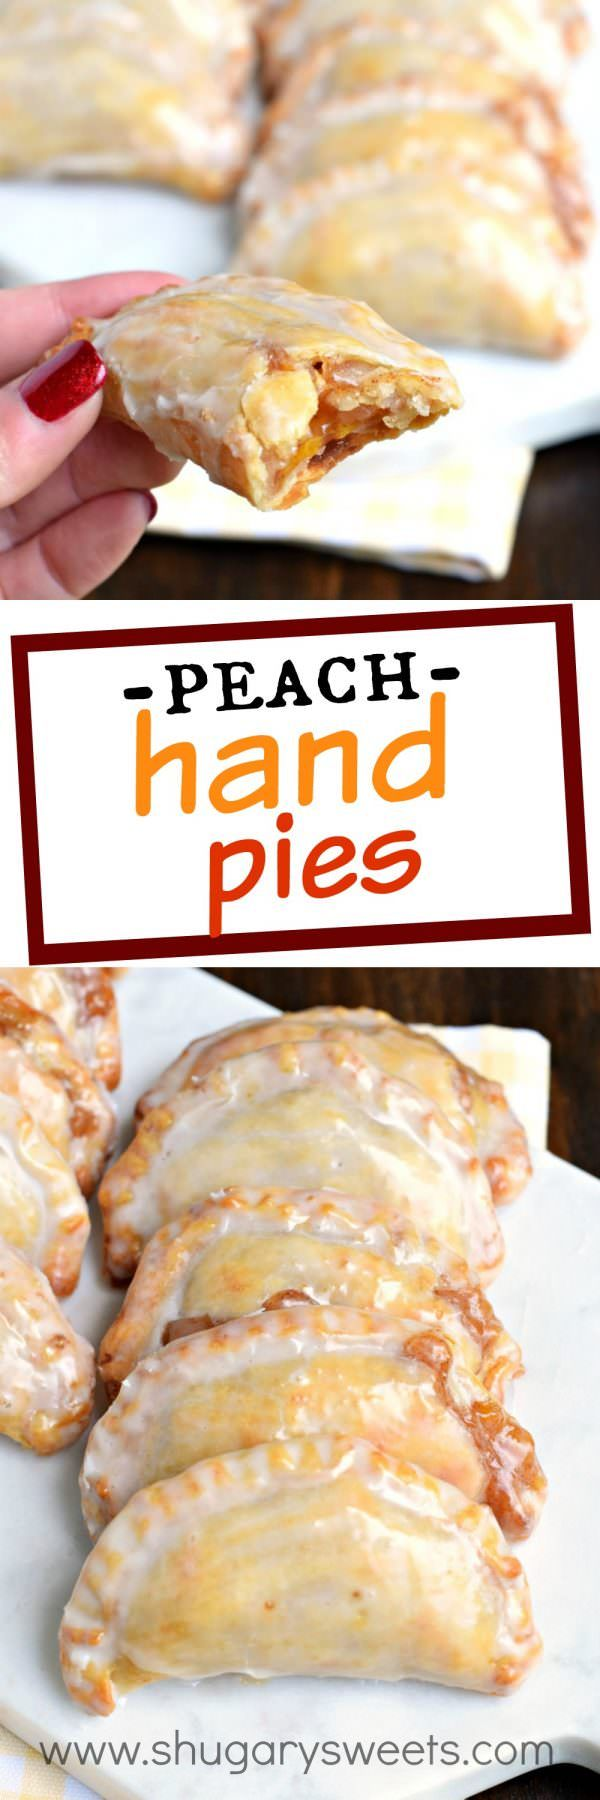 Peach Hand Pies | Shugary Sweets | Dessert is ready in 30 minutes with these Glazed Peach Hand Pies! The flaky crust and spicy cinnamon filling are the perfect combo in a hand pie, plus they're baked not fried!